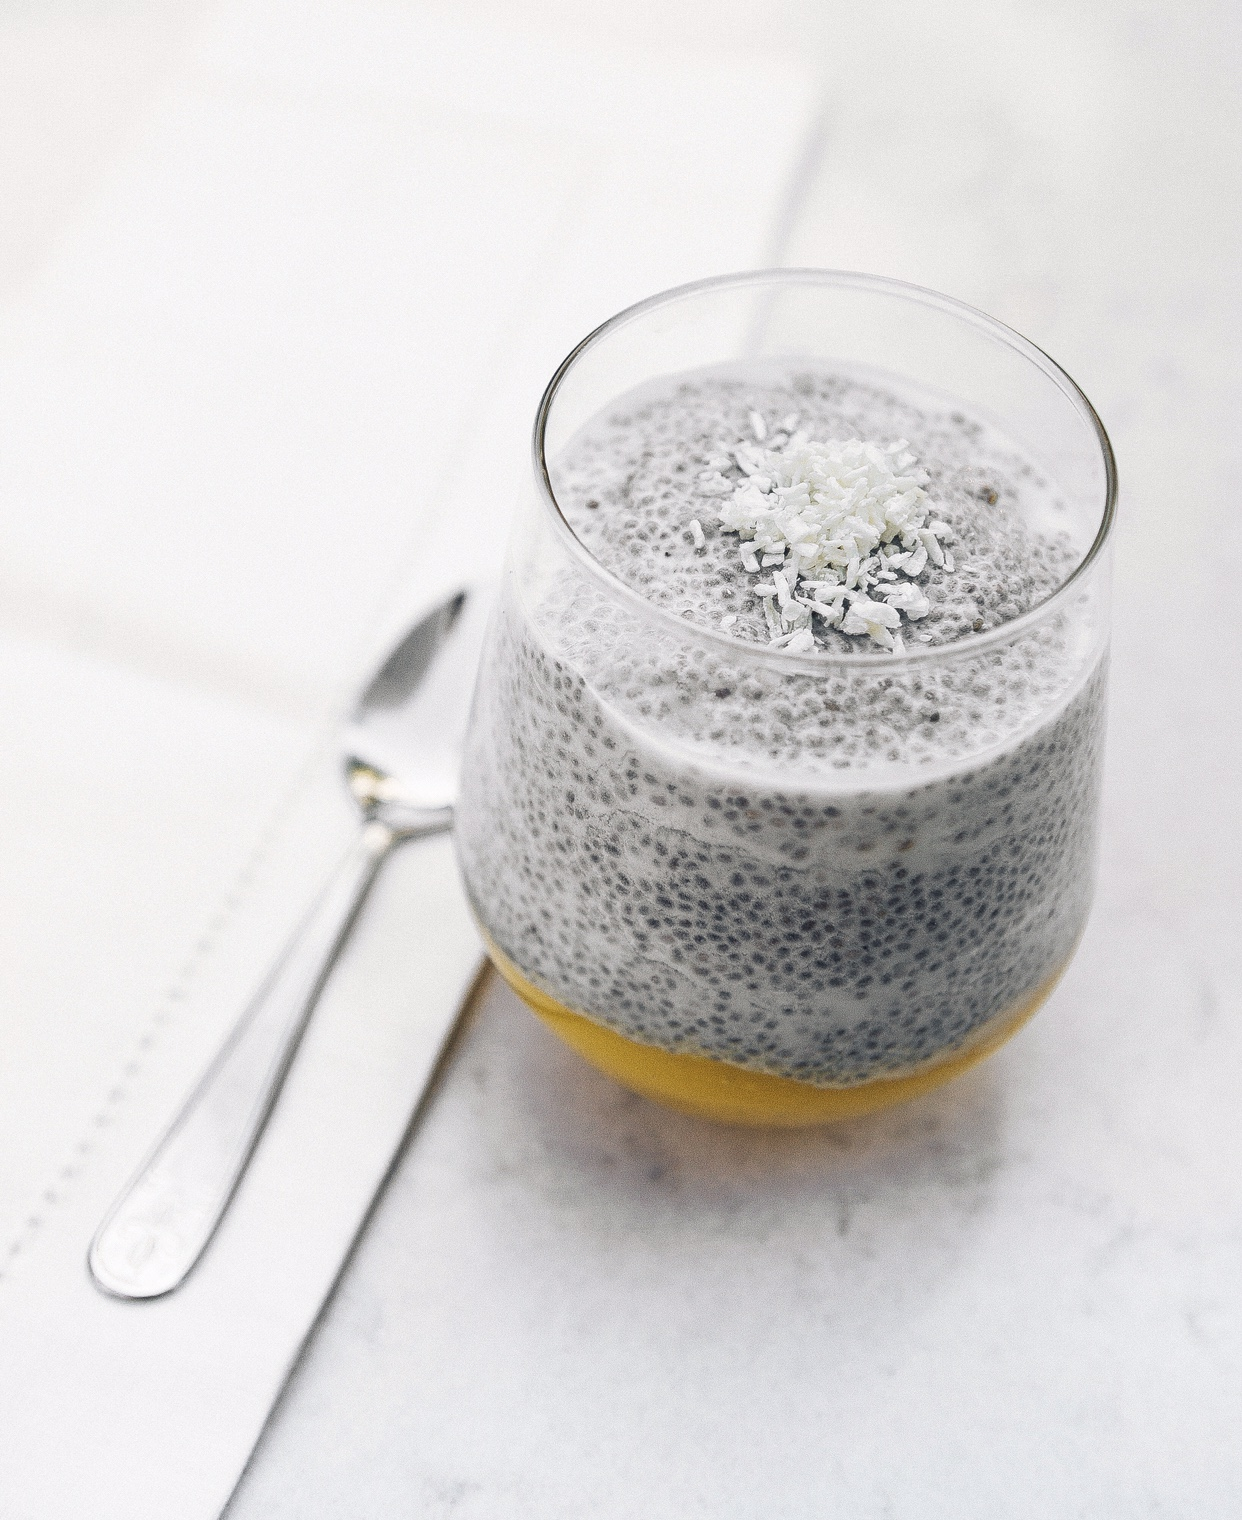 Chia seed puddings help to keep the body functioning optimally.